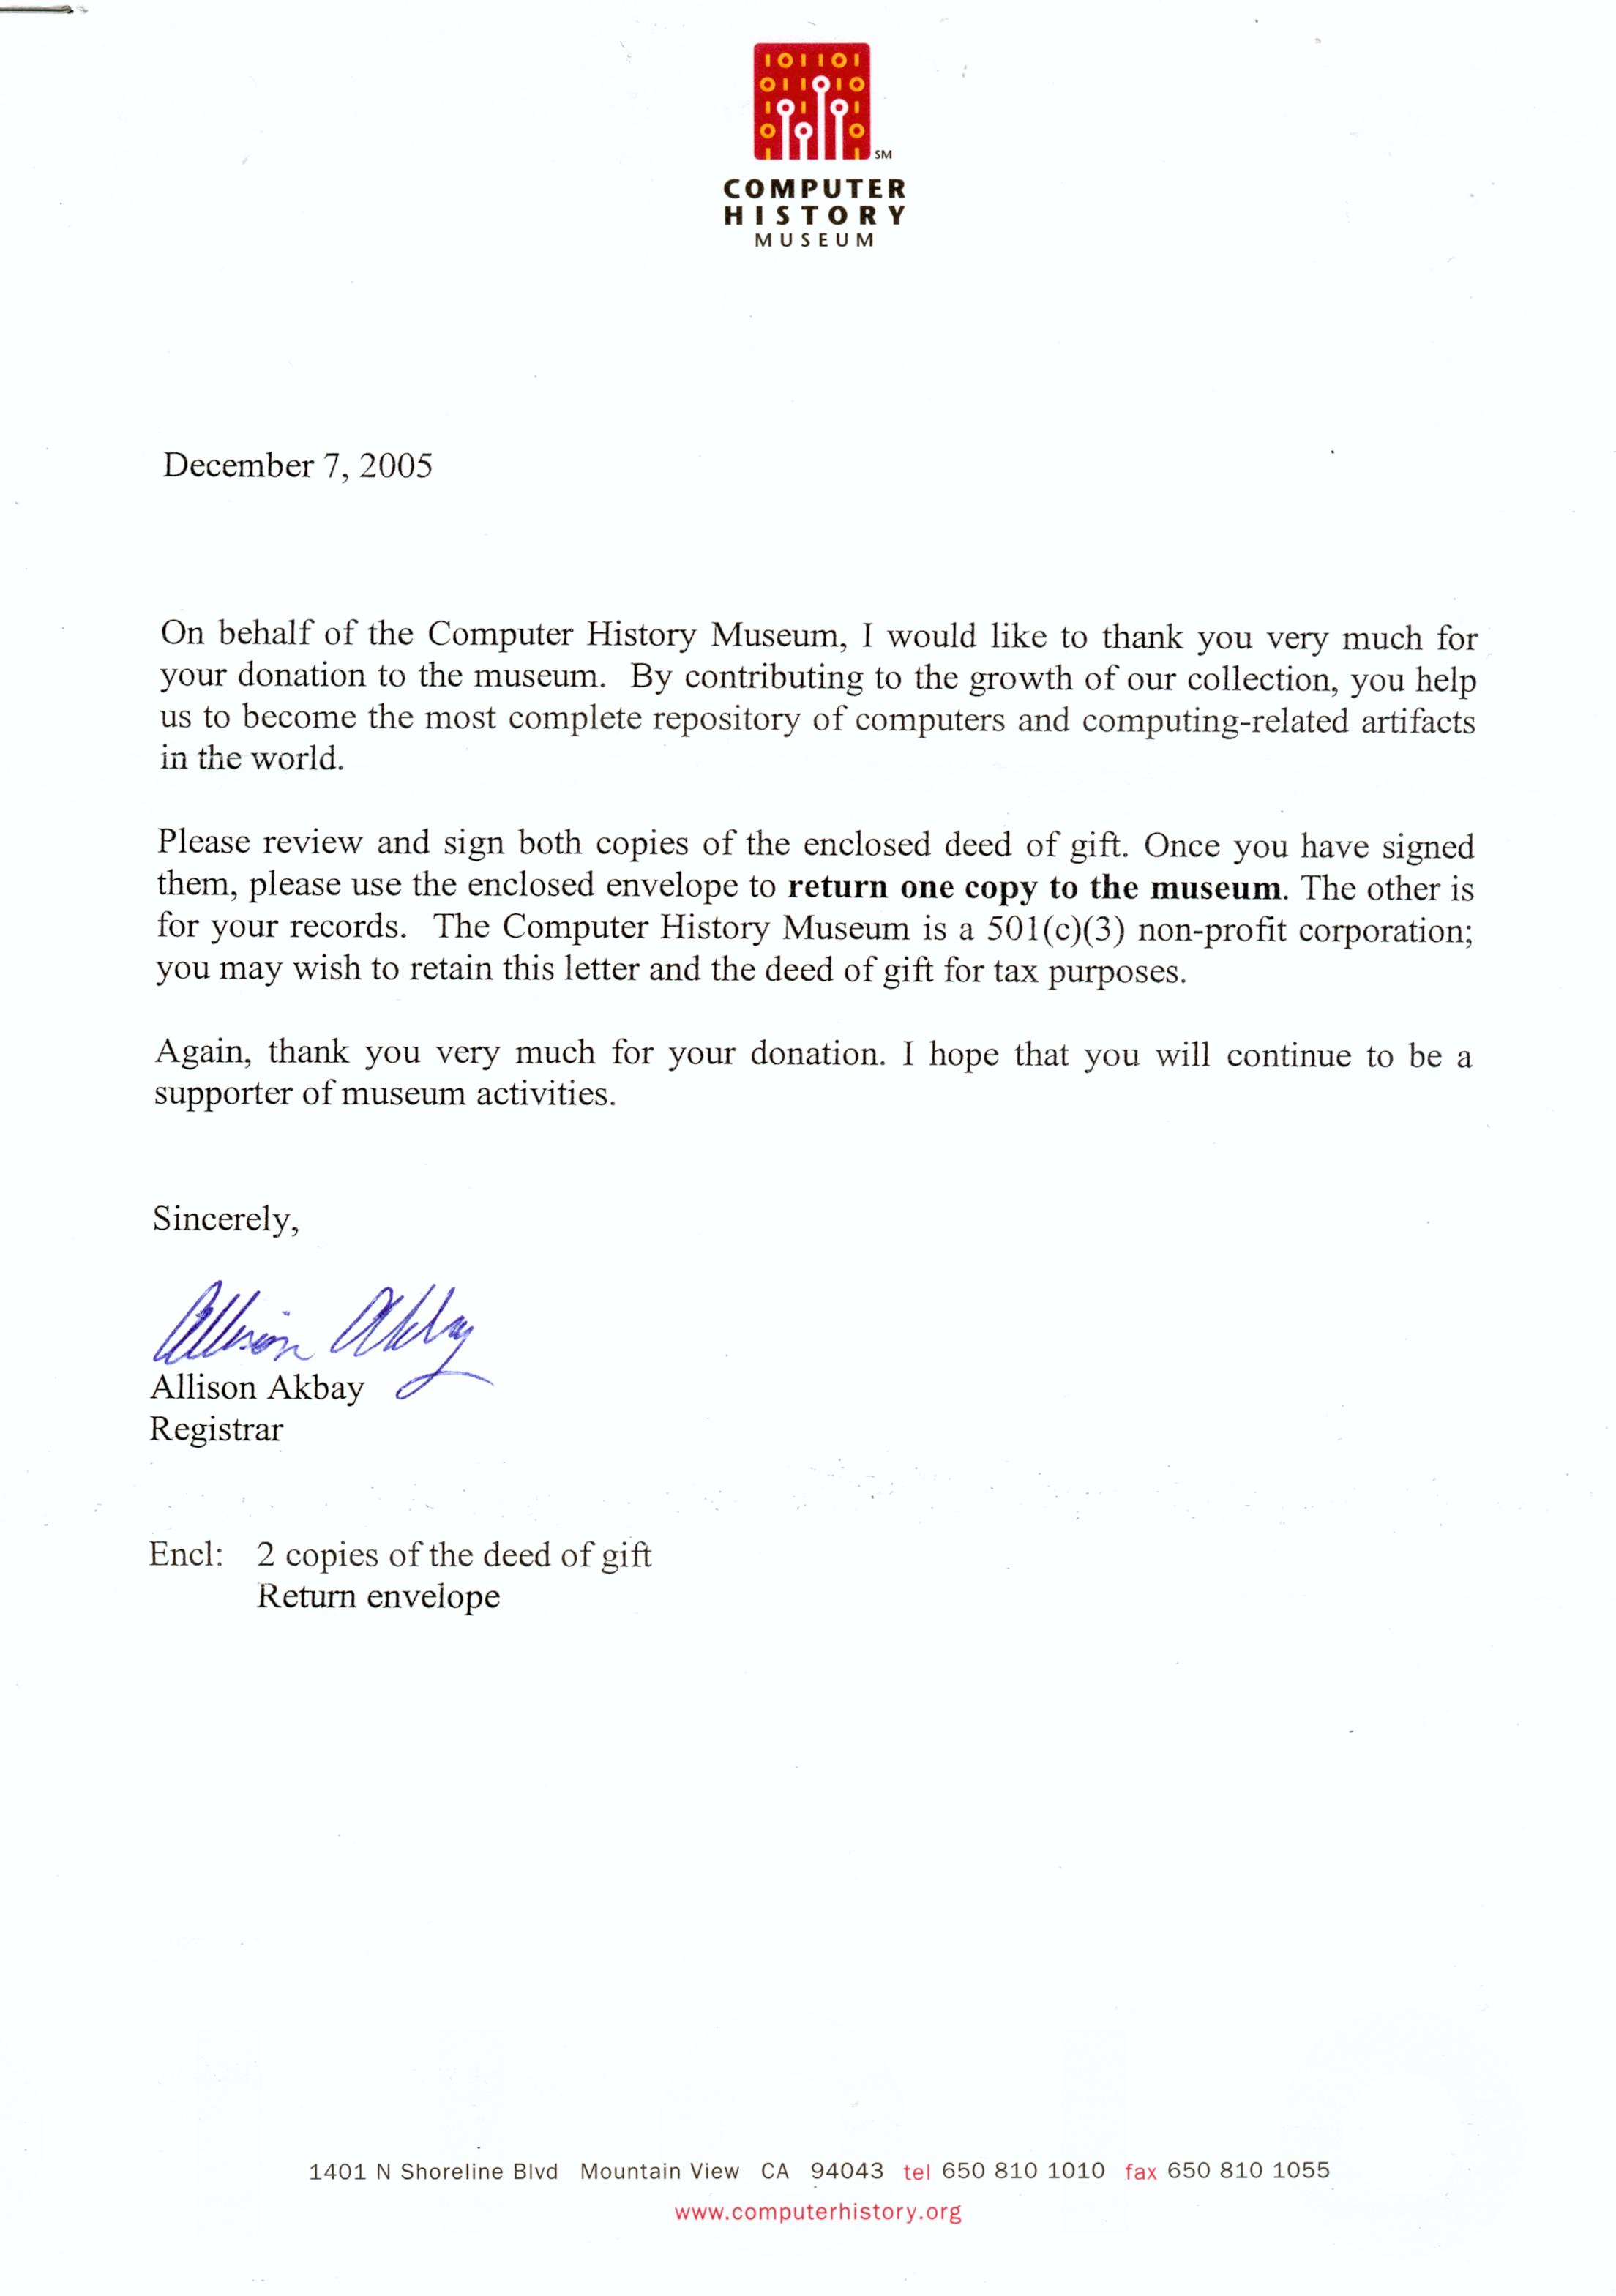 CHM Gift Letter